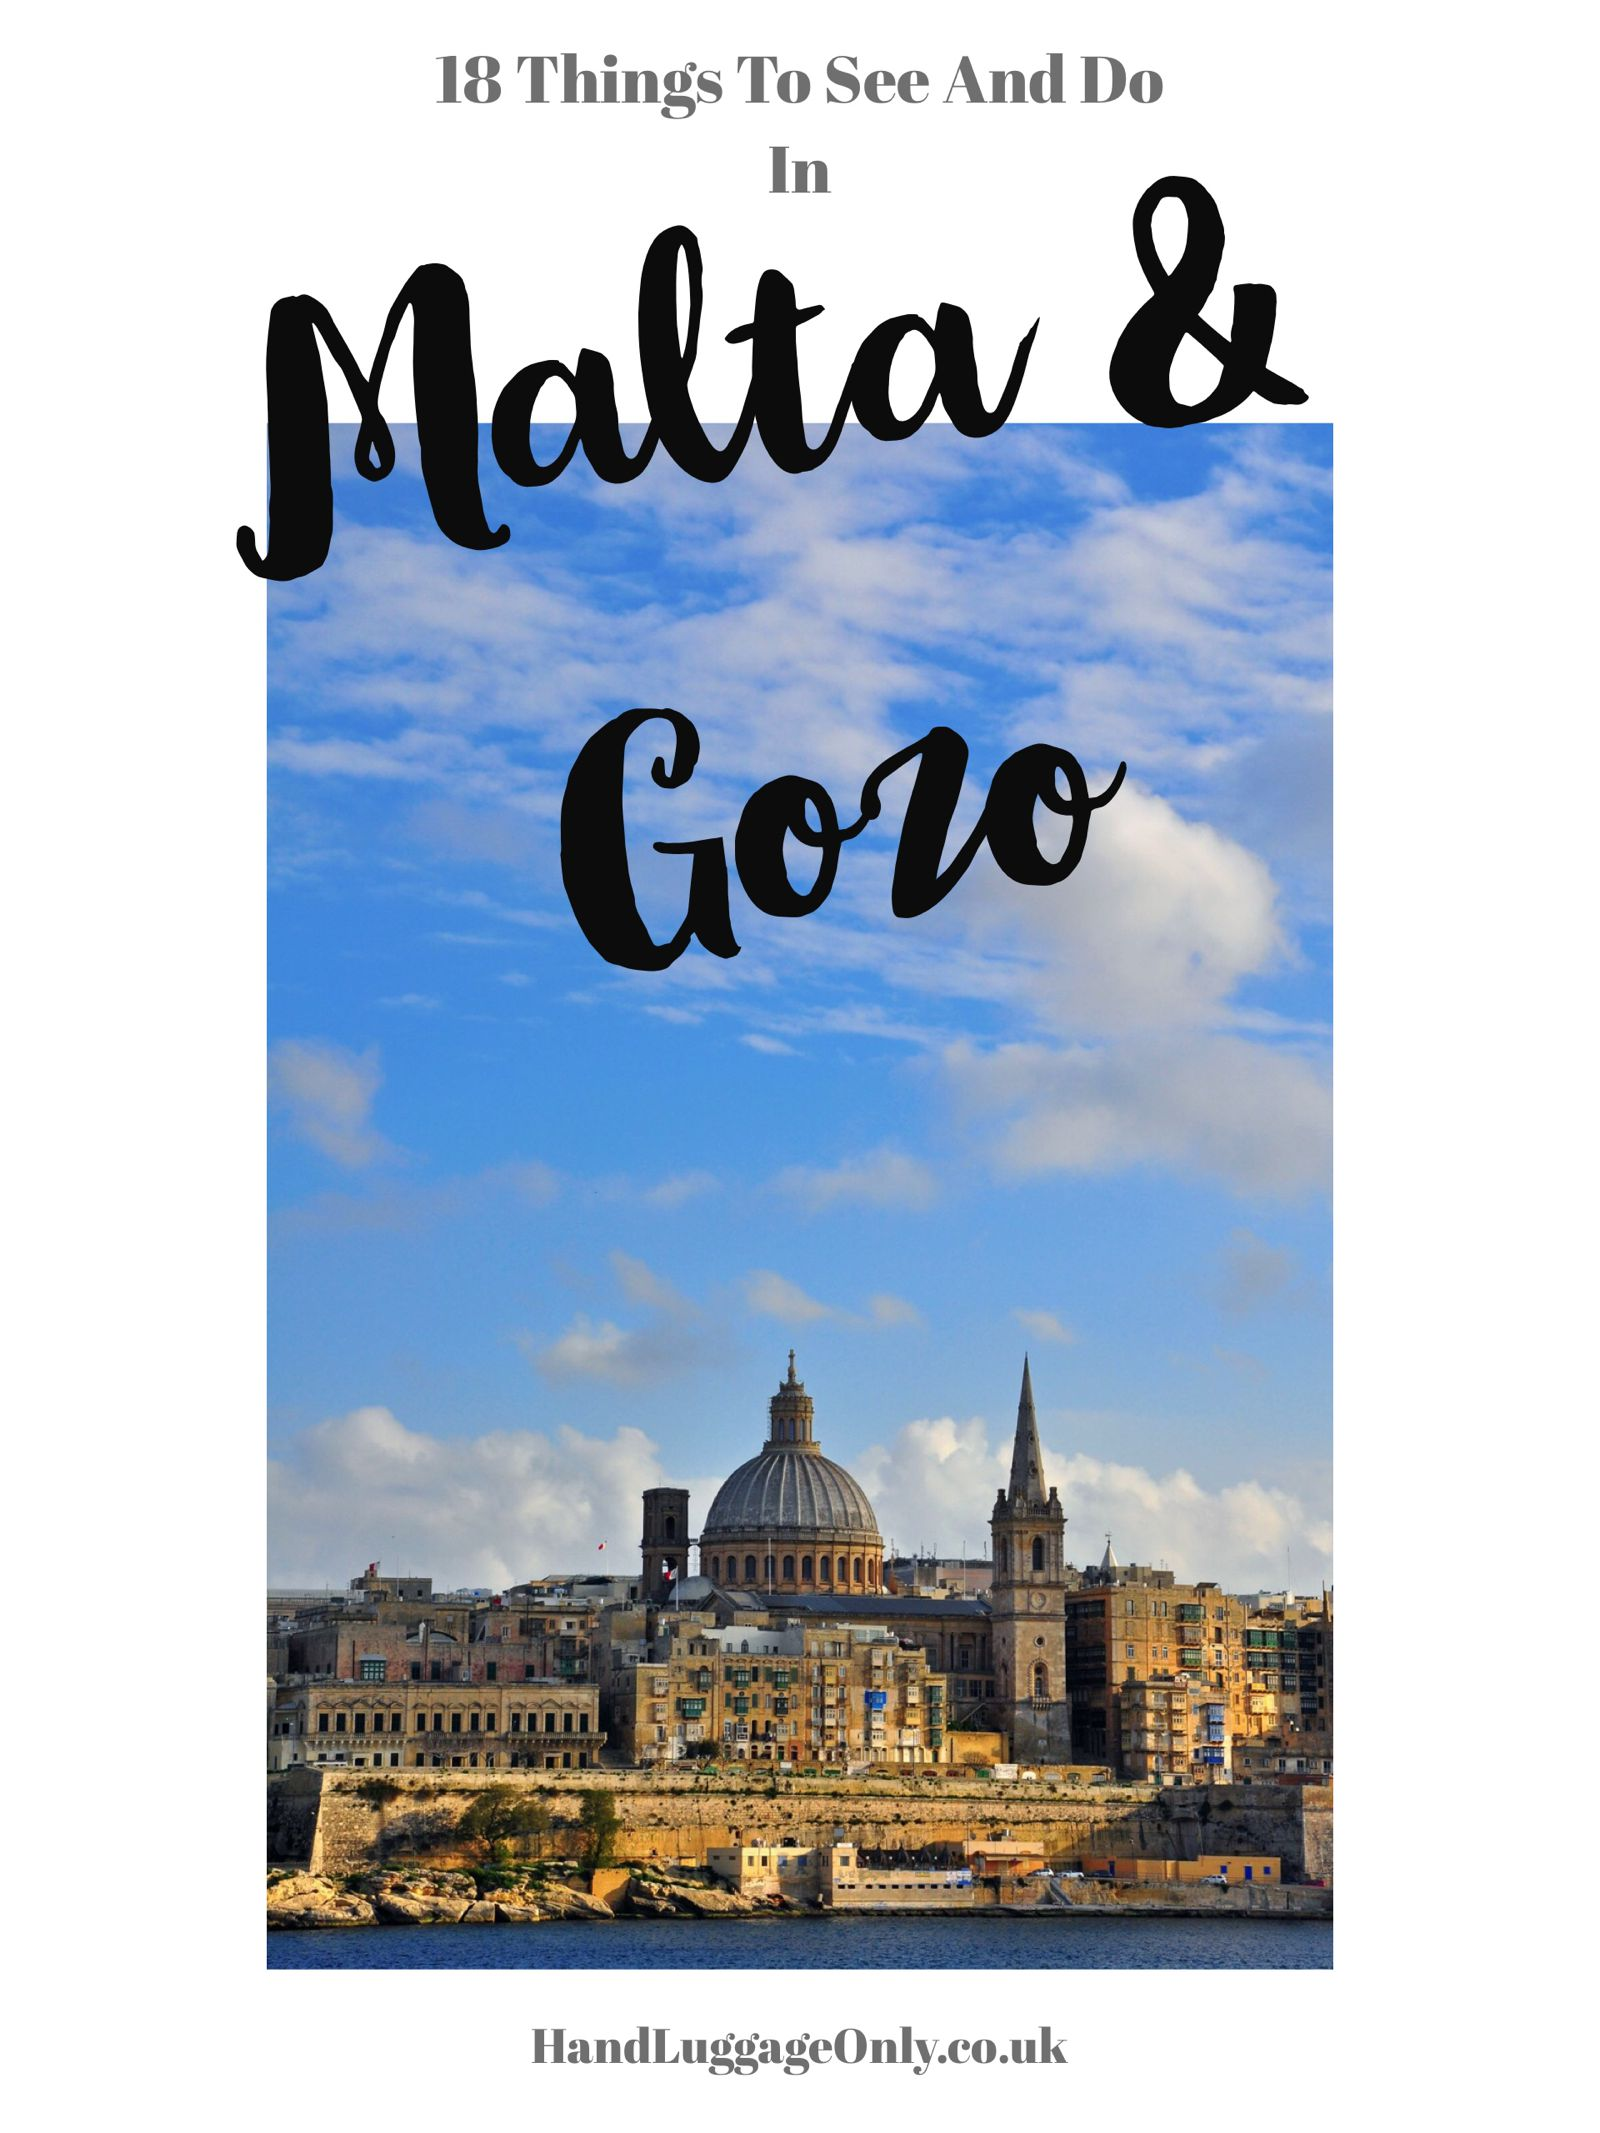 18 Incredible Things You Have To See And Do In Malta And Gozo (23)